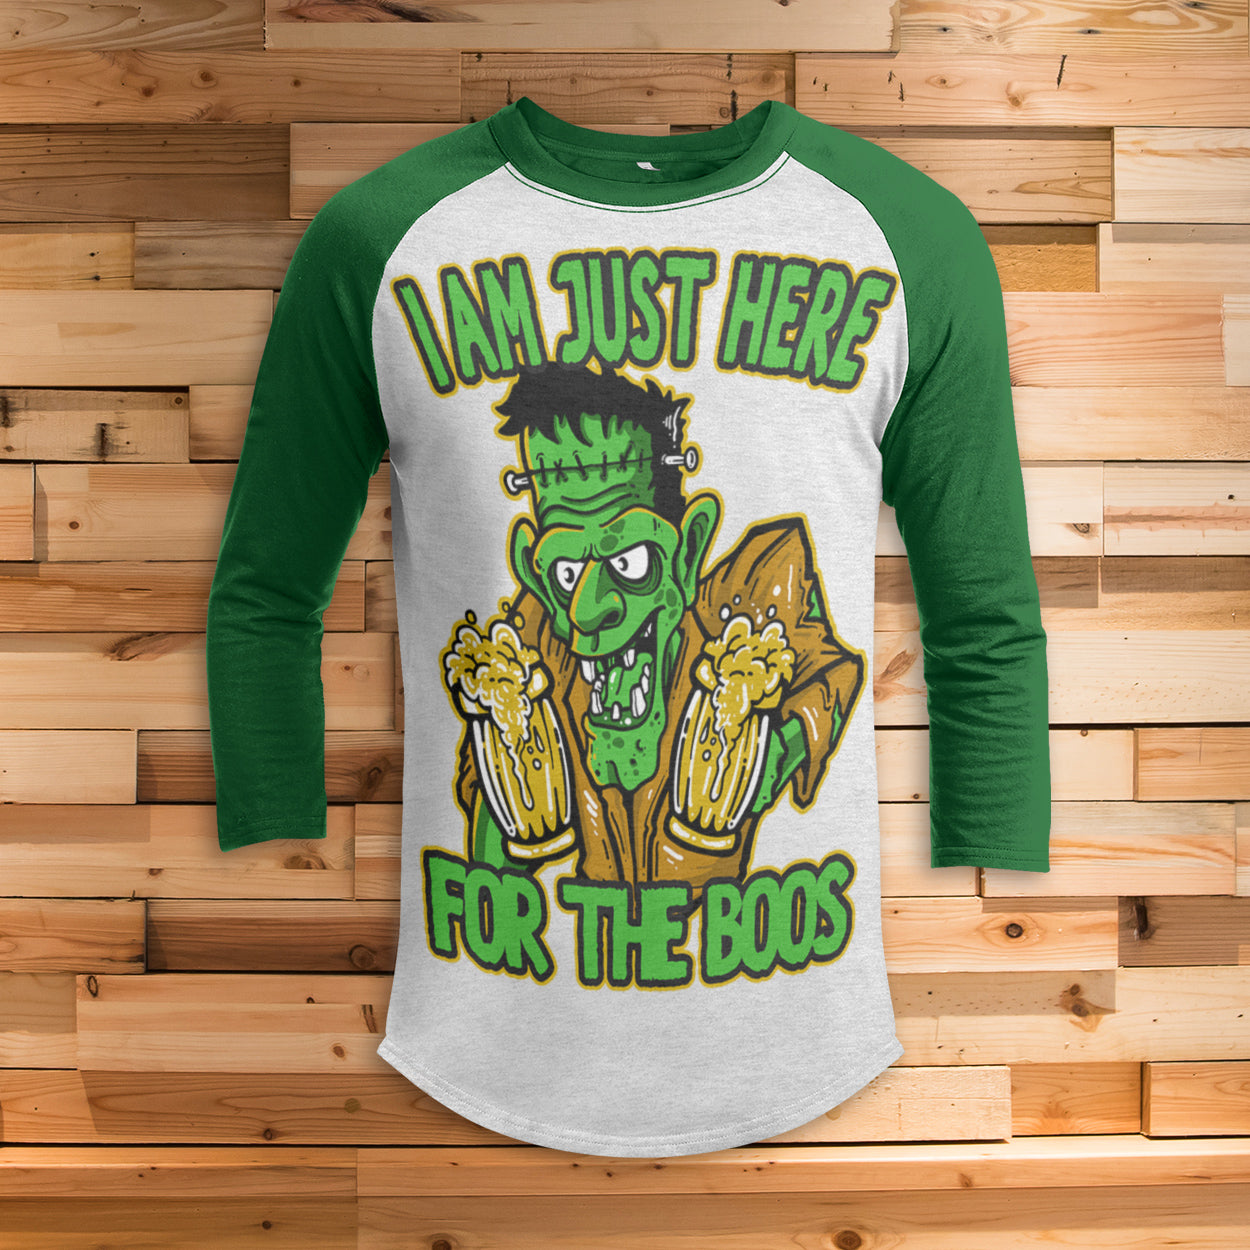 Frankenstein Here for the Boos All Over Print 3/4 Sleeve Raglan